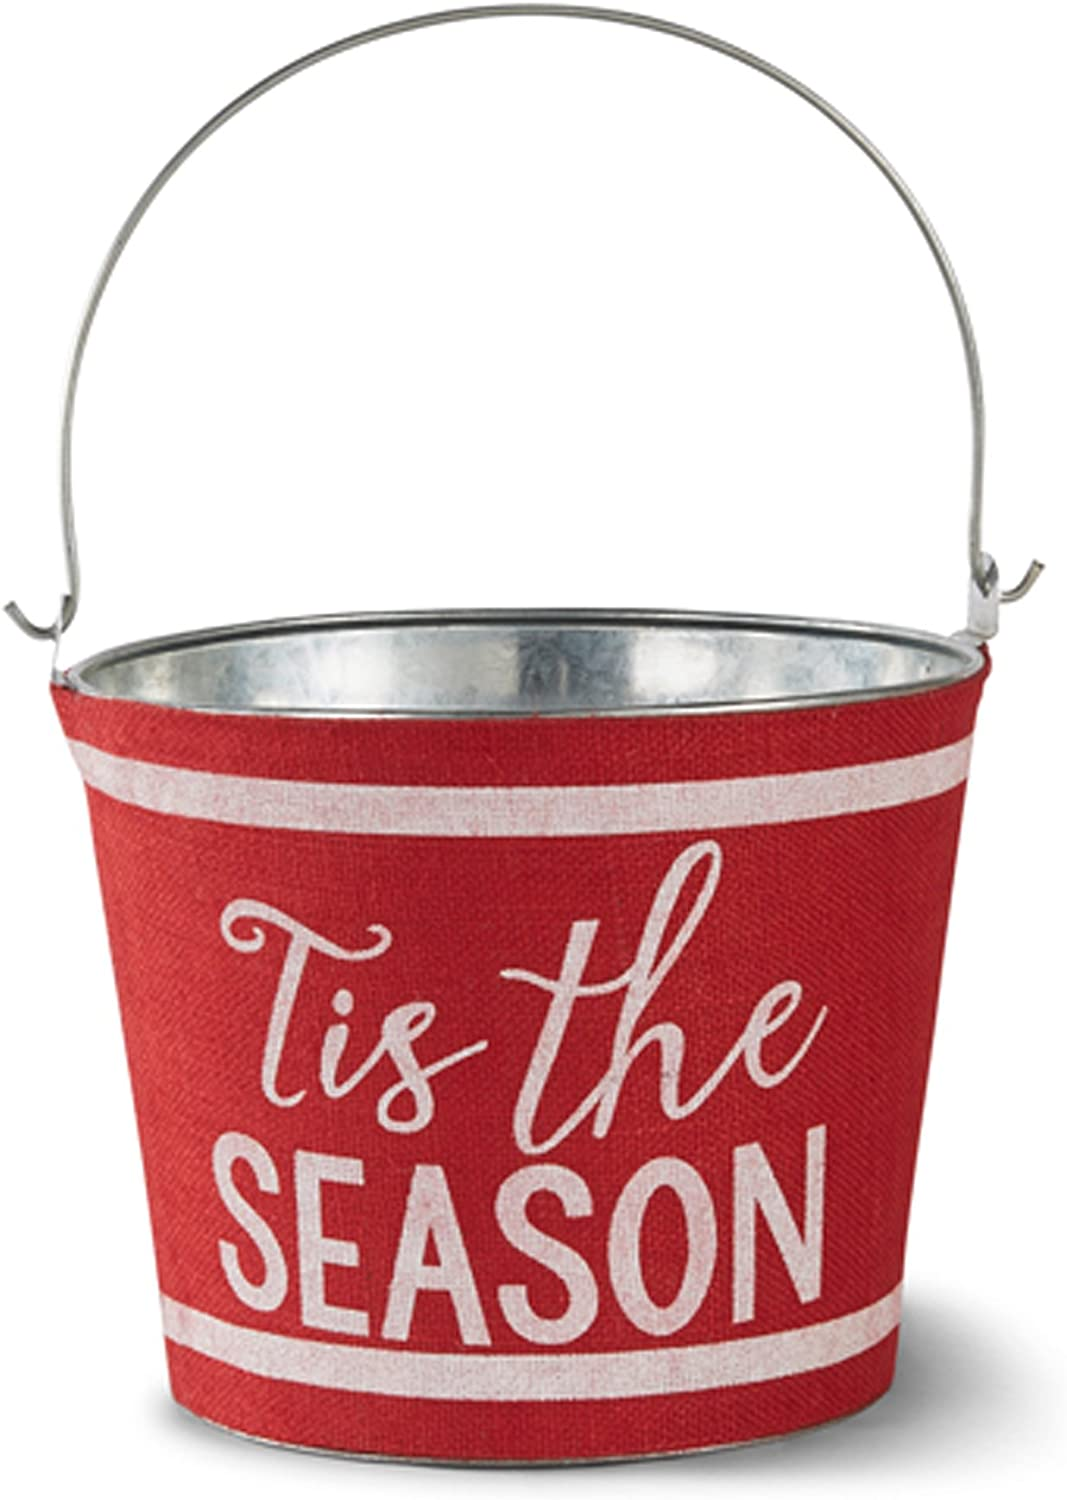 Mud Pie Tis The Season Holiday Christmas Beverage Tub, Red